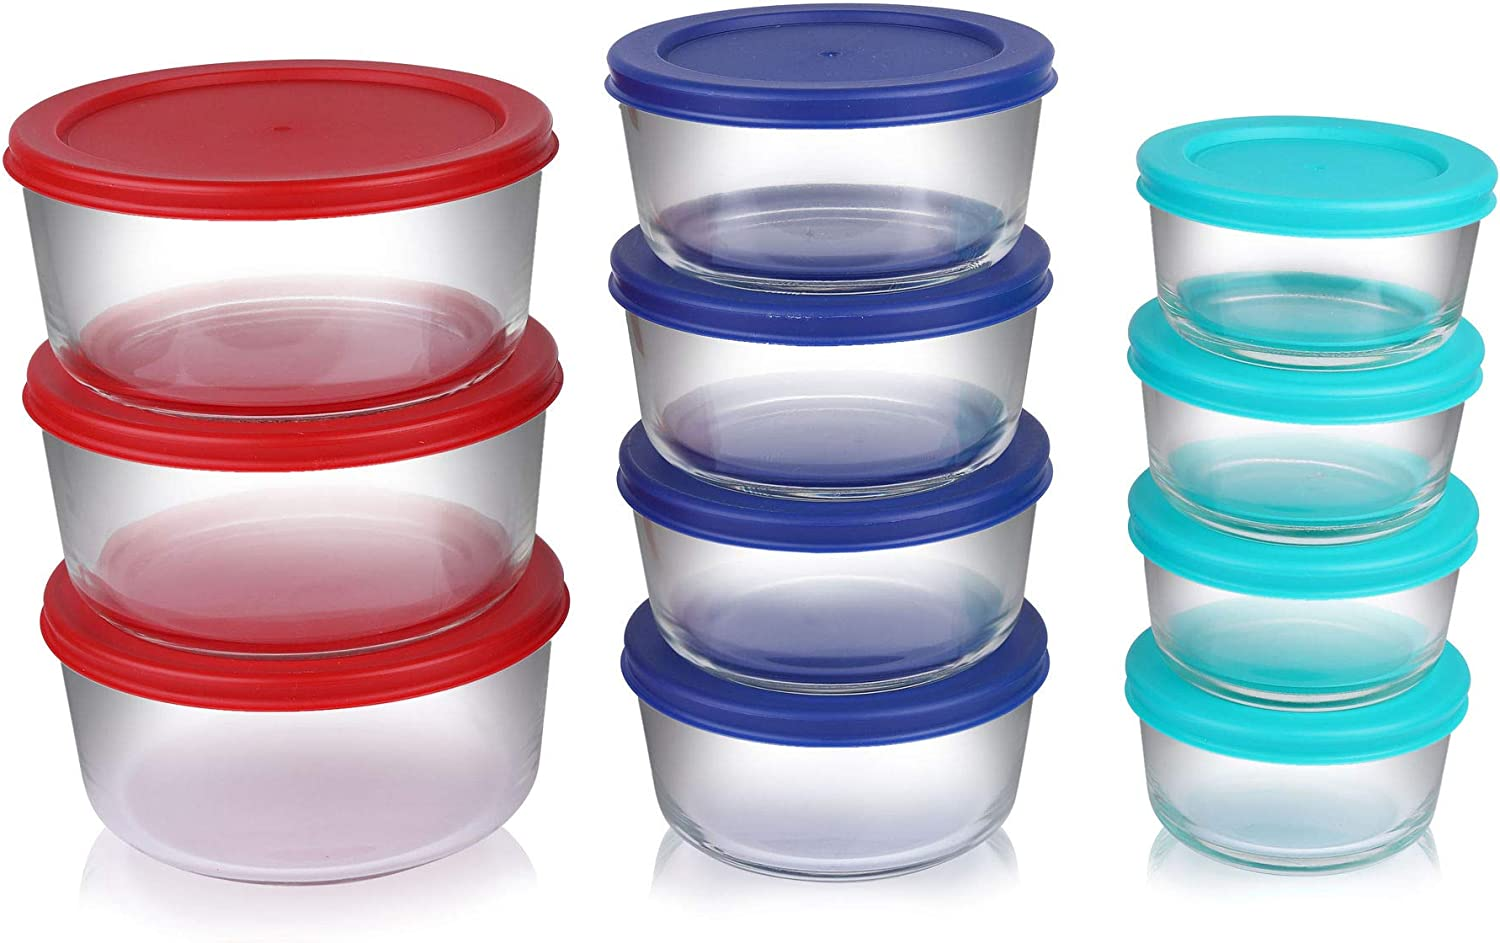 Bovado USA Round Food Storage Containers with Plastic Lids, Mixed Sizes, Set of 11